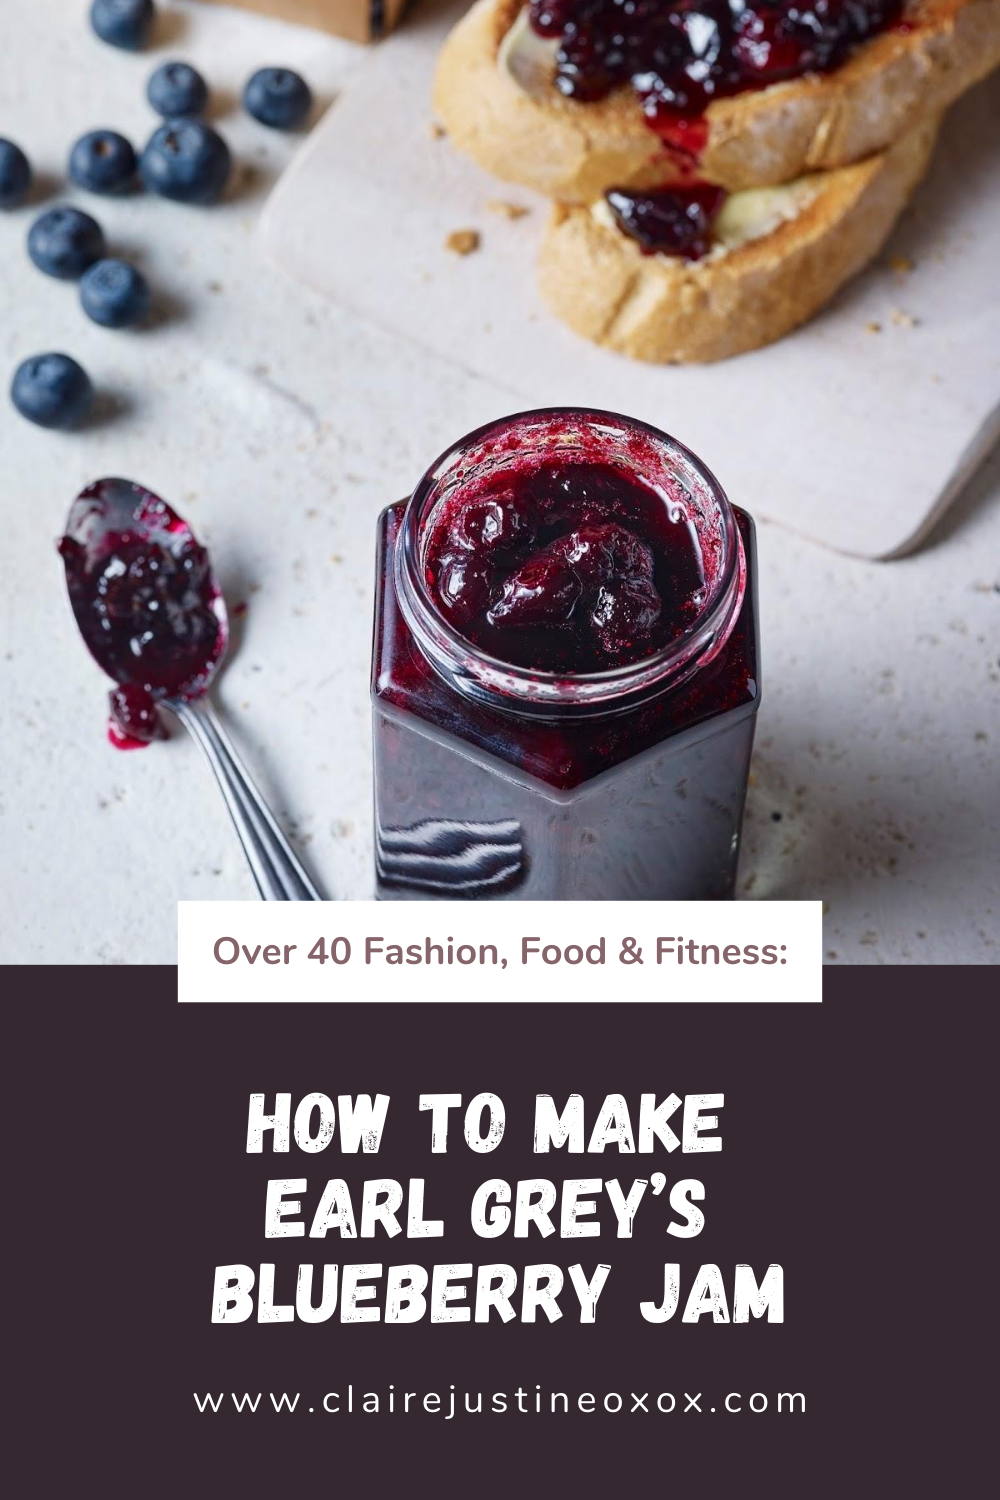 How To Make Earl Grey's Blueberry Jam